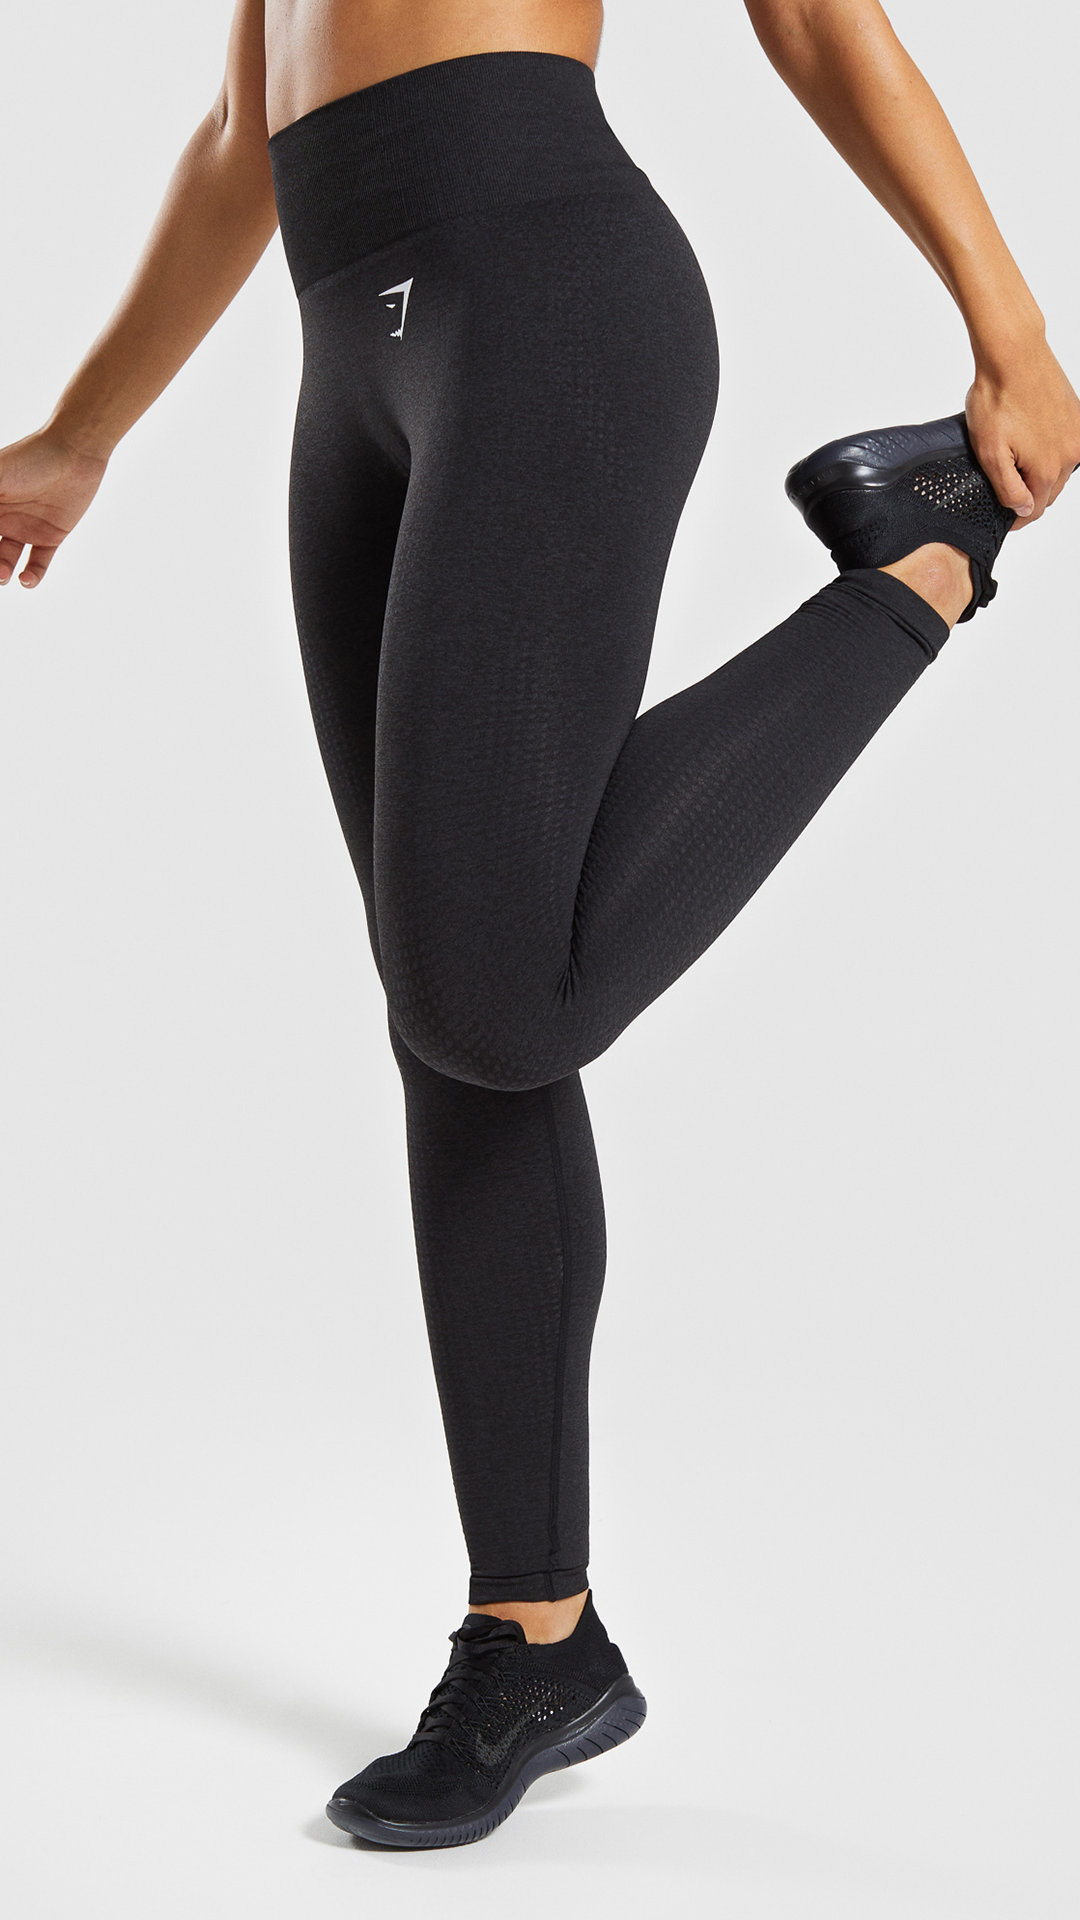 a4dbce4800861d Vital Seamless Leggings, Black. Figure enhancing, sweat wicking with DRY  technology and empowering. #Gymshark #Gym #Sweat #Train #Perform #Vital ...